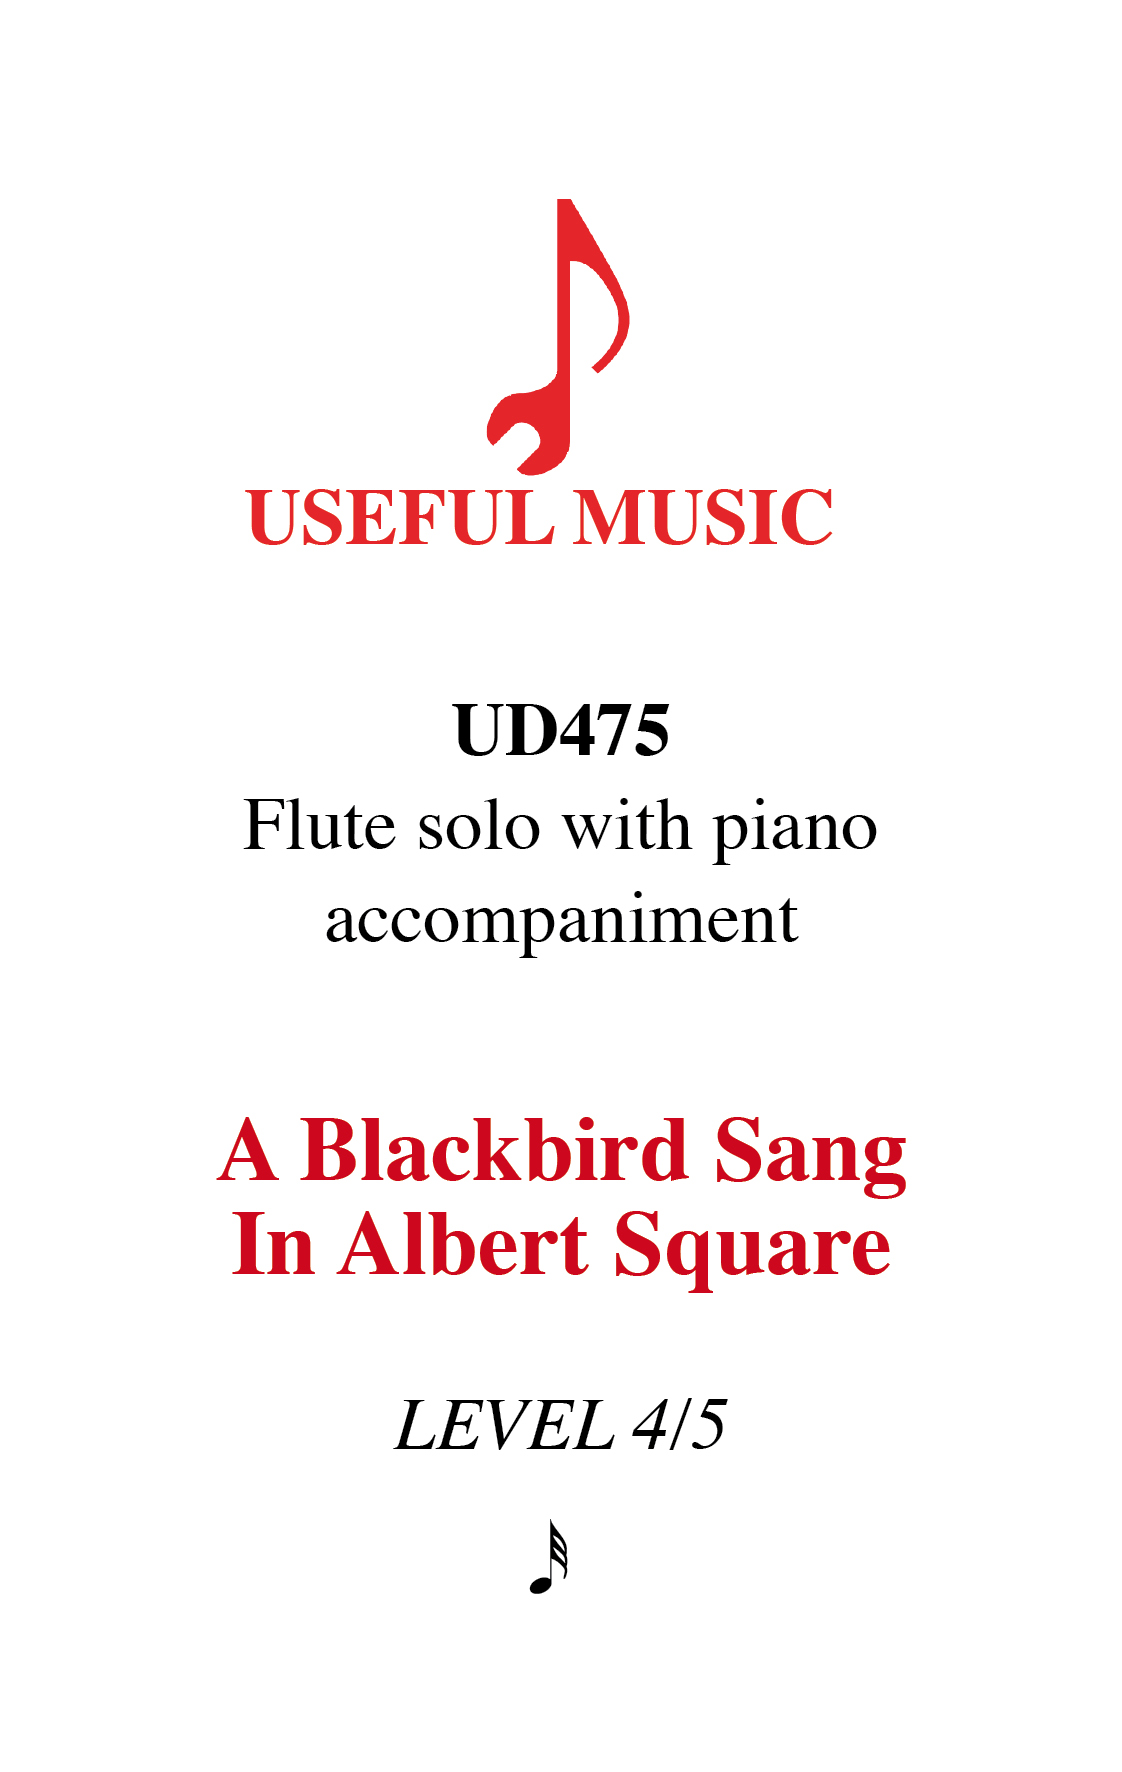 A Blackbird Sang in Albert Square - flute with piano accompaniment